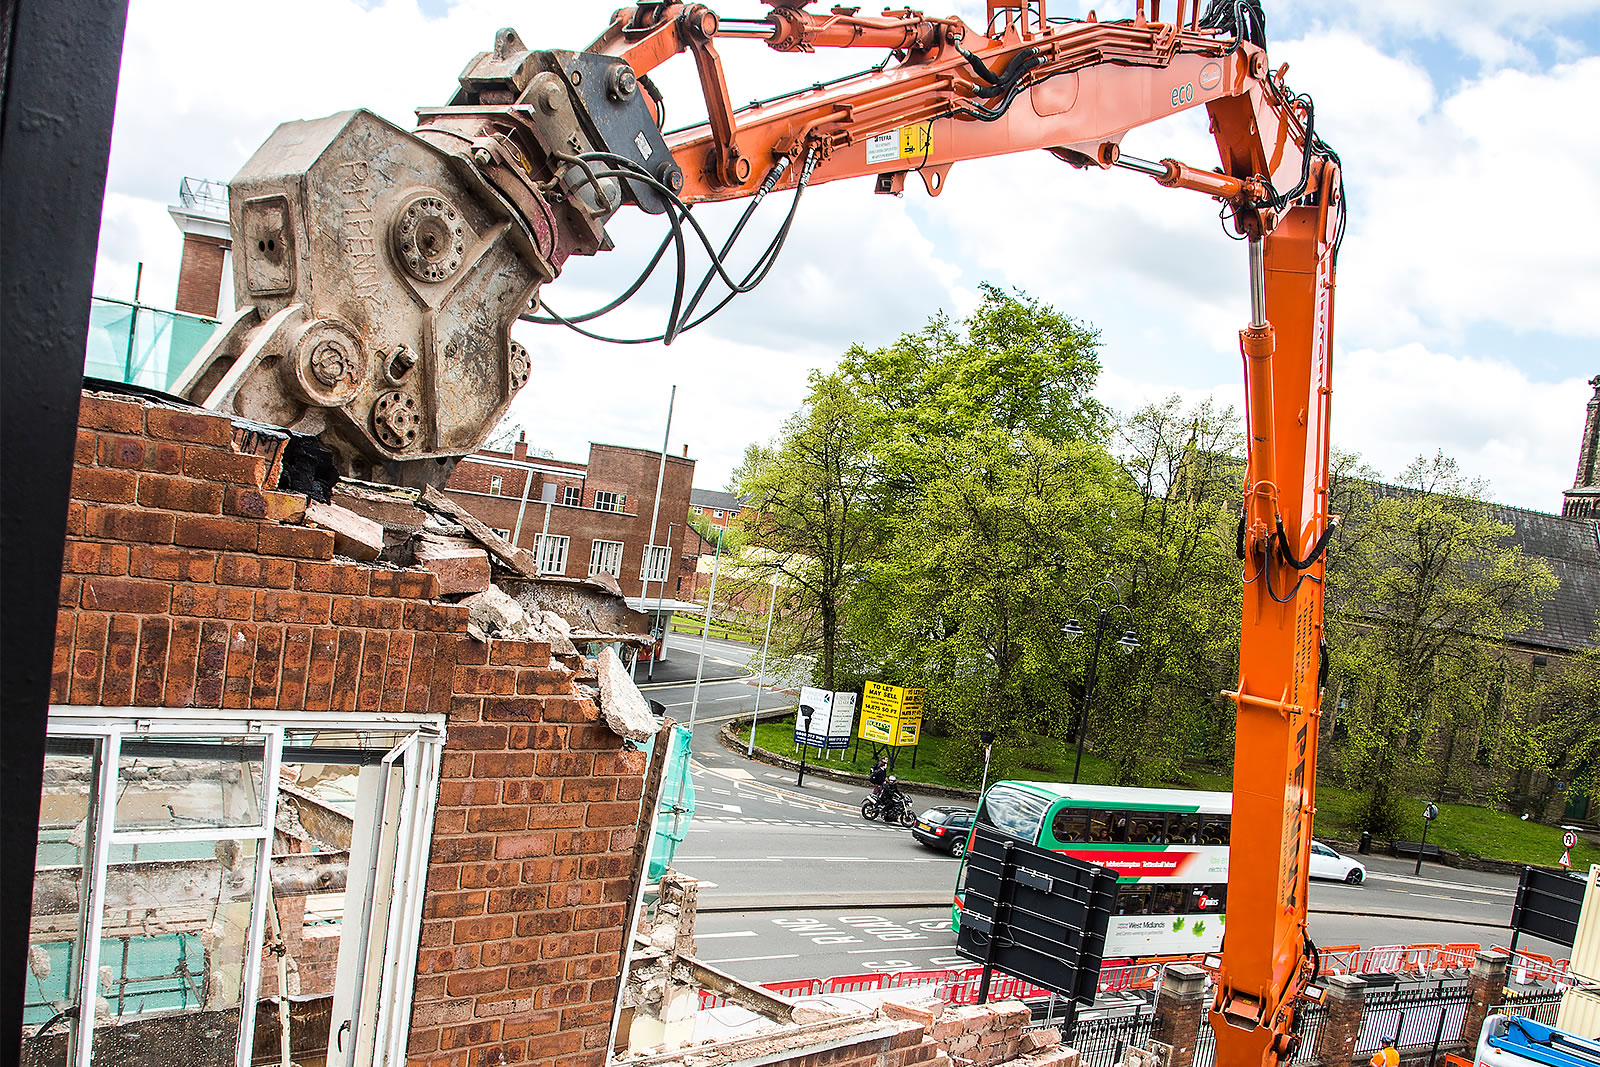 Hitachi ZX350LC-5 high-reach demolition excavator arm and boom